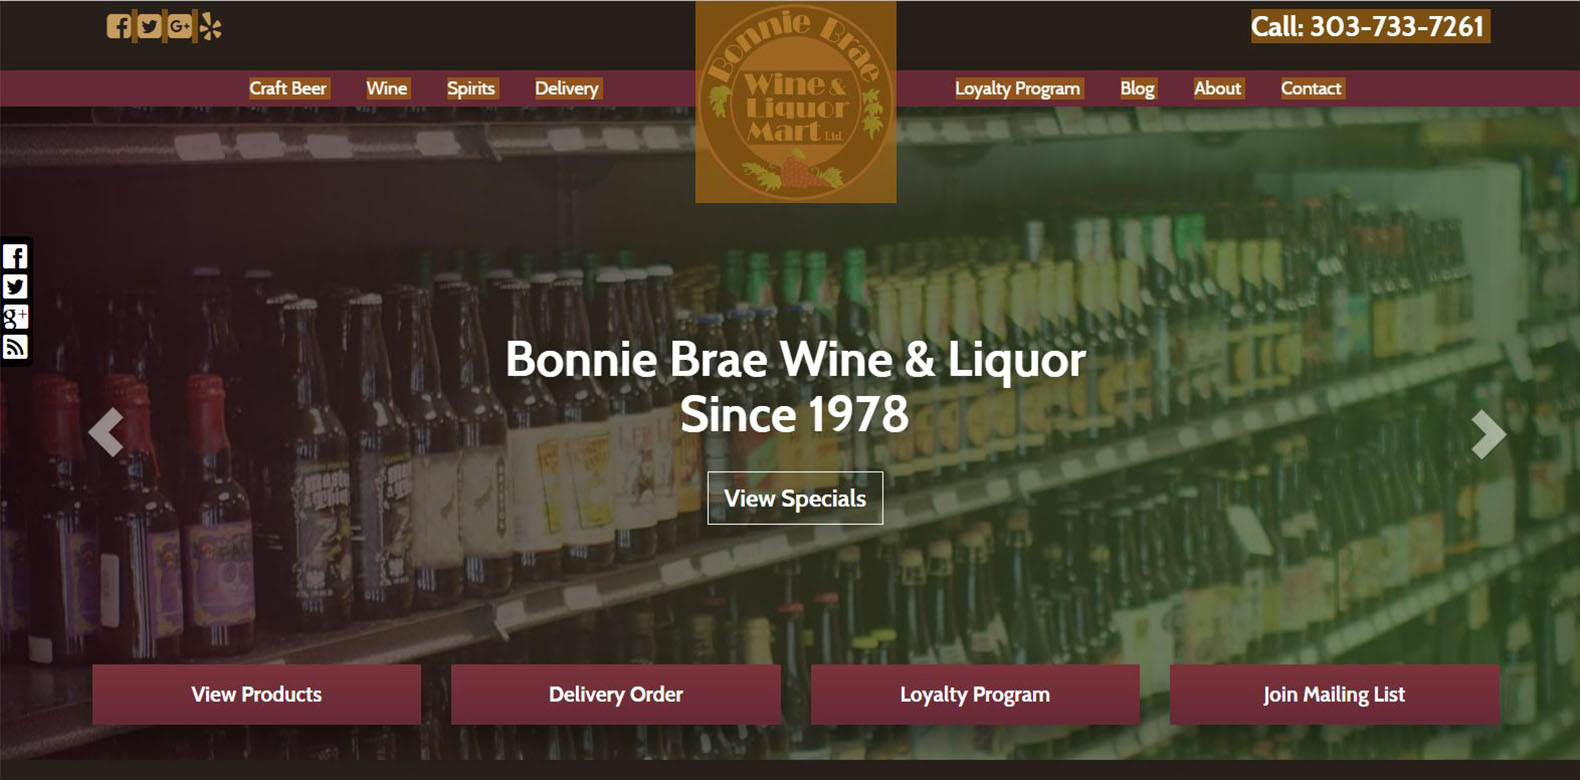 New Website Launched: Bonnie Brae Wine & Liquor